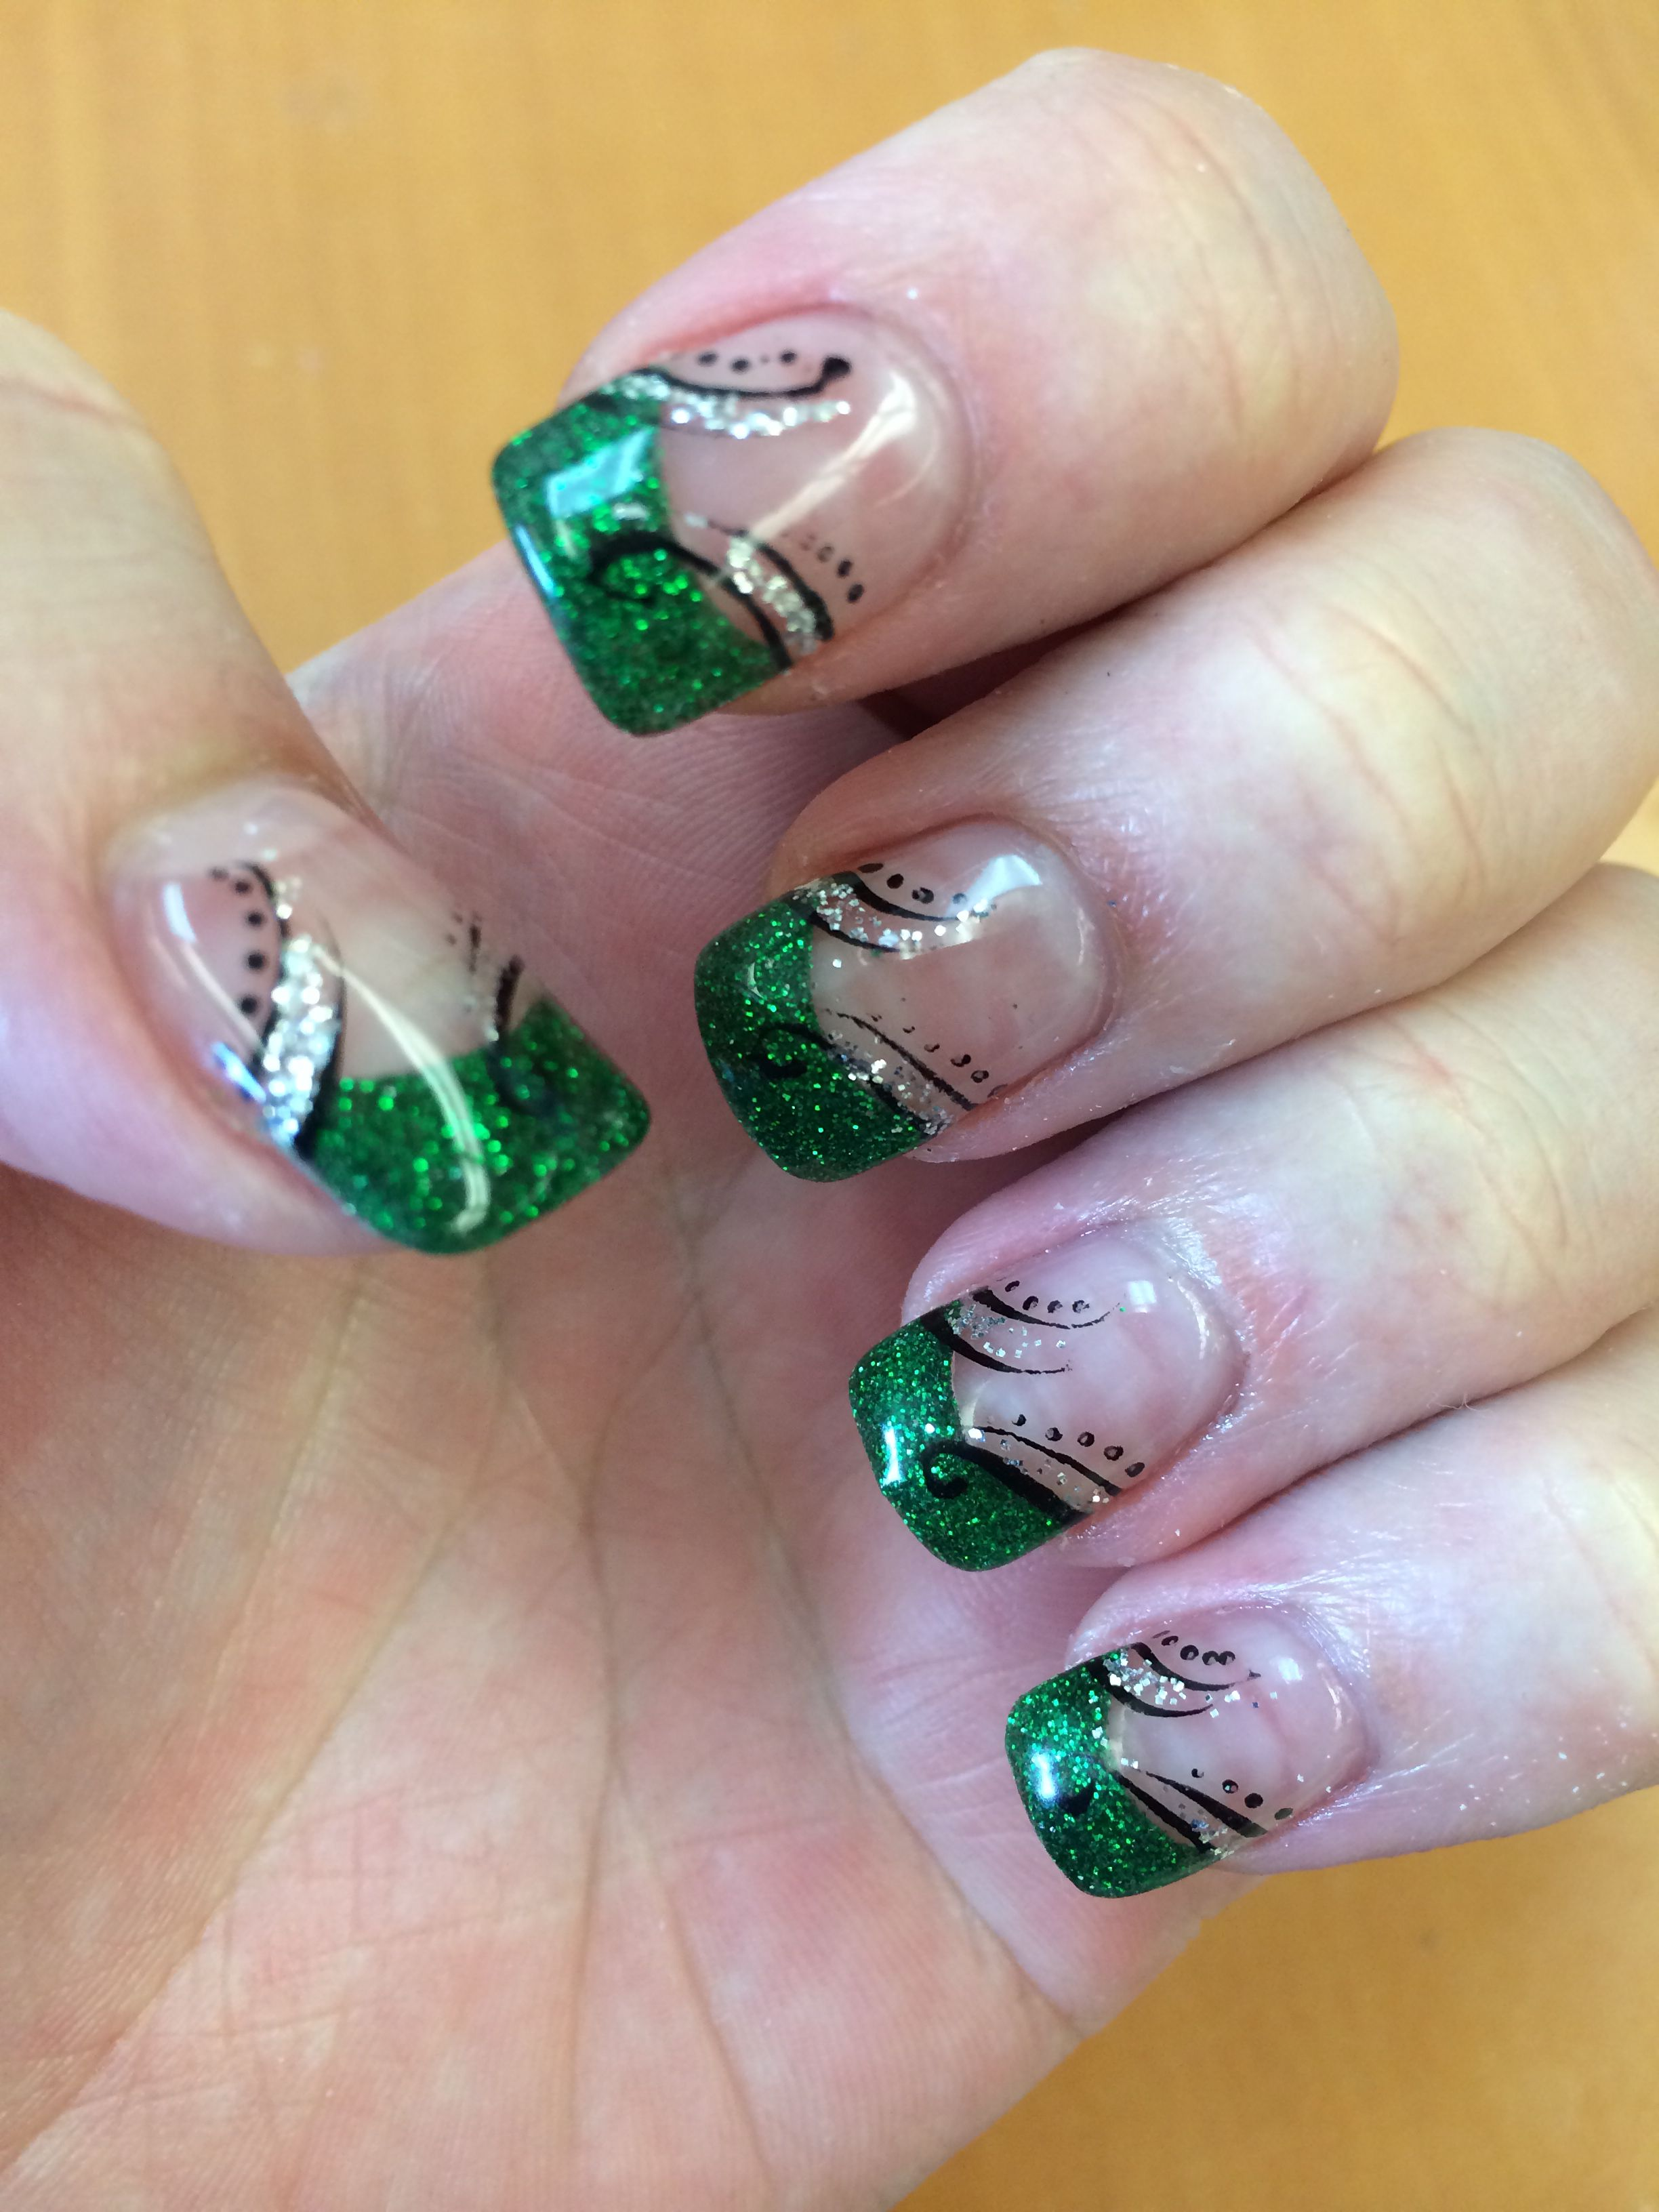 Saint Patricks day nails | Nails | Pinterest | Saints, Nail nail and ...